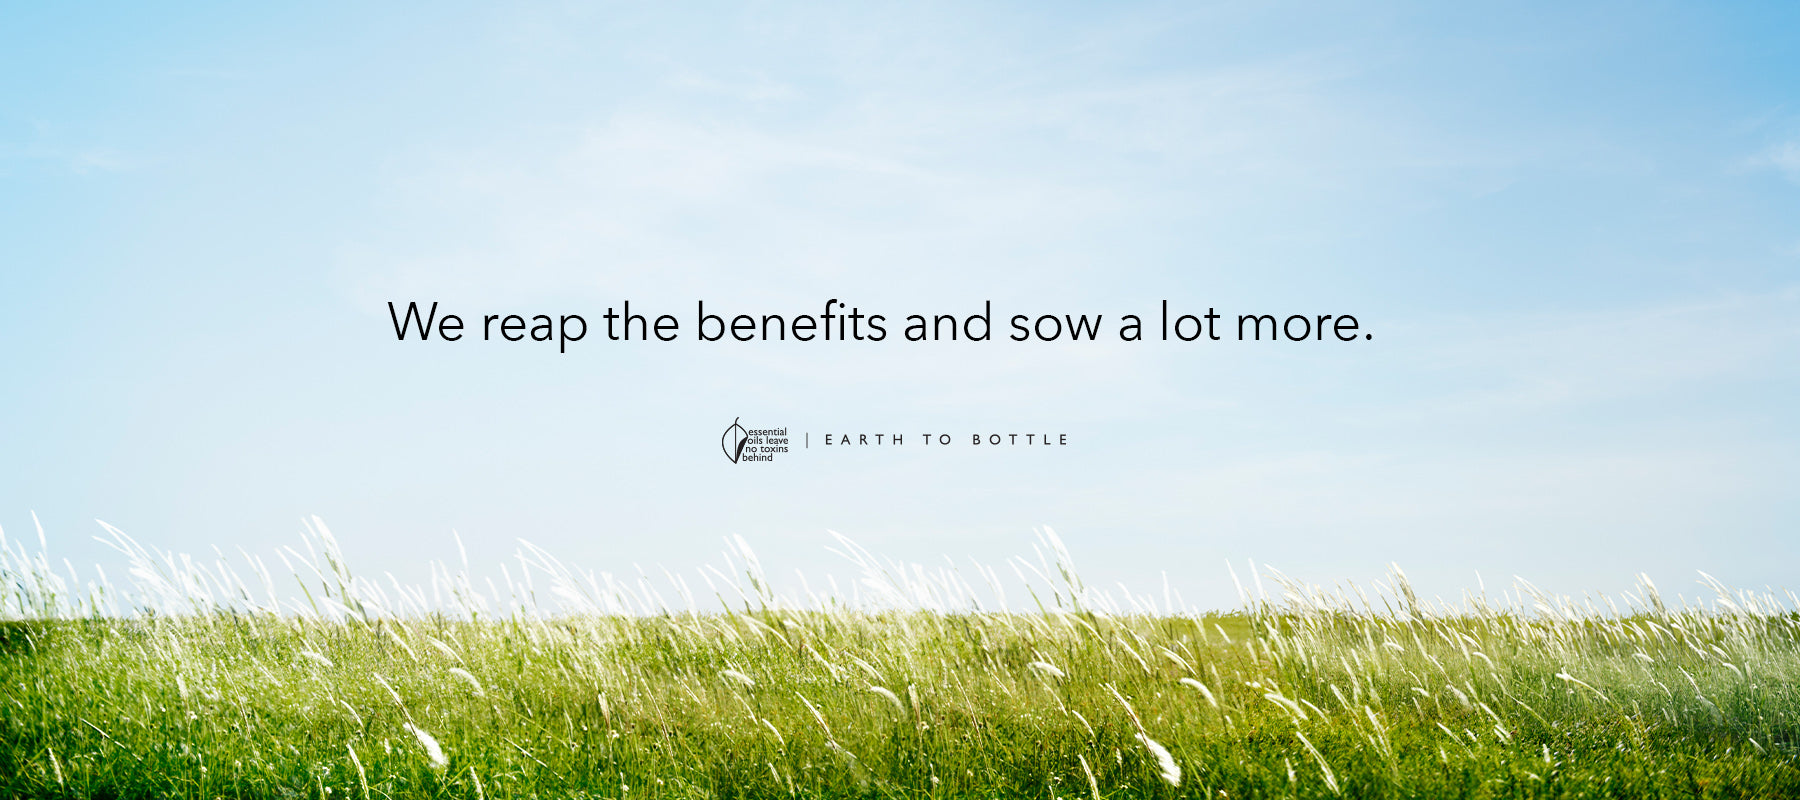 We reap the benefits and sow a lot more.